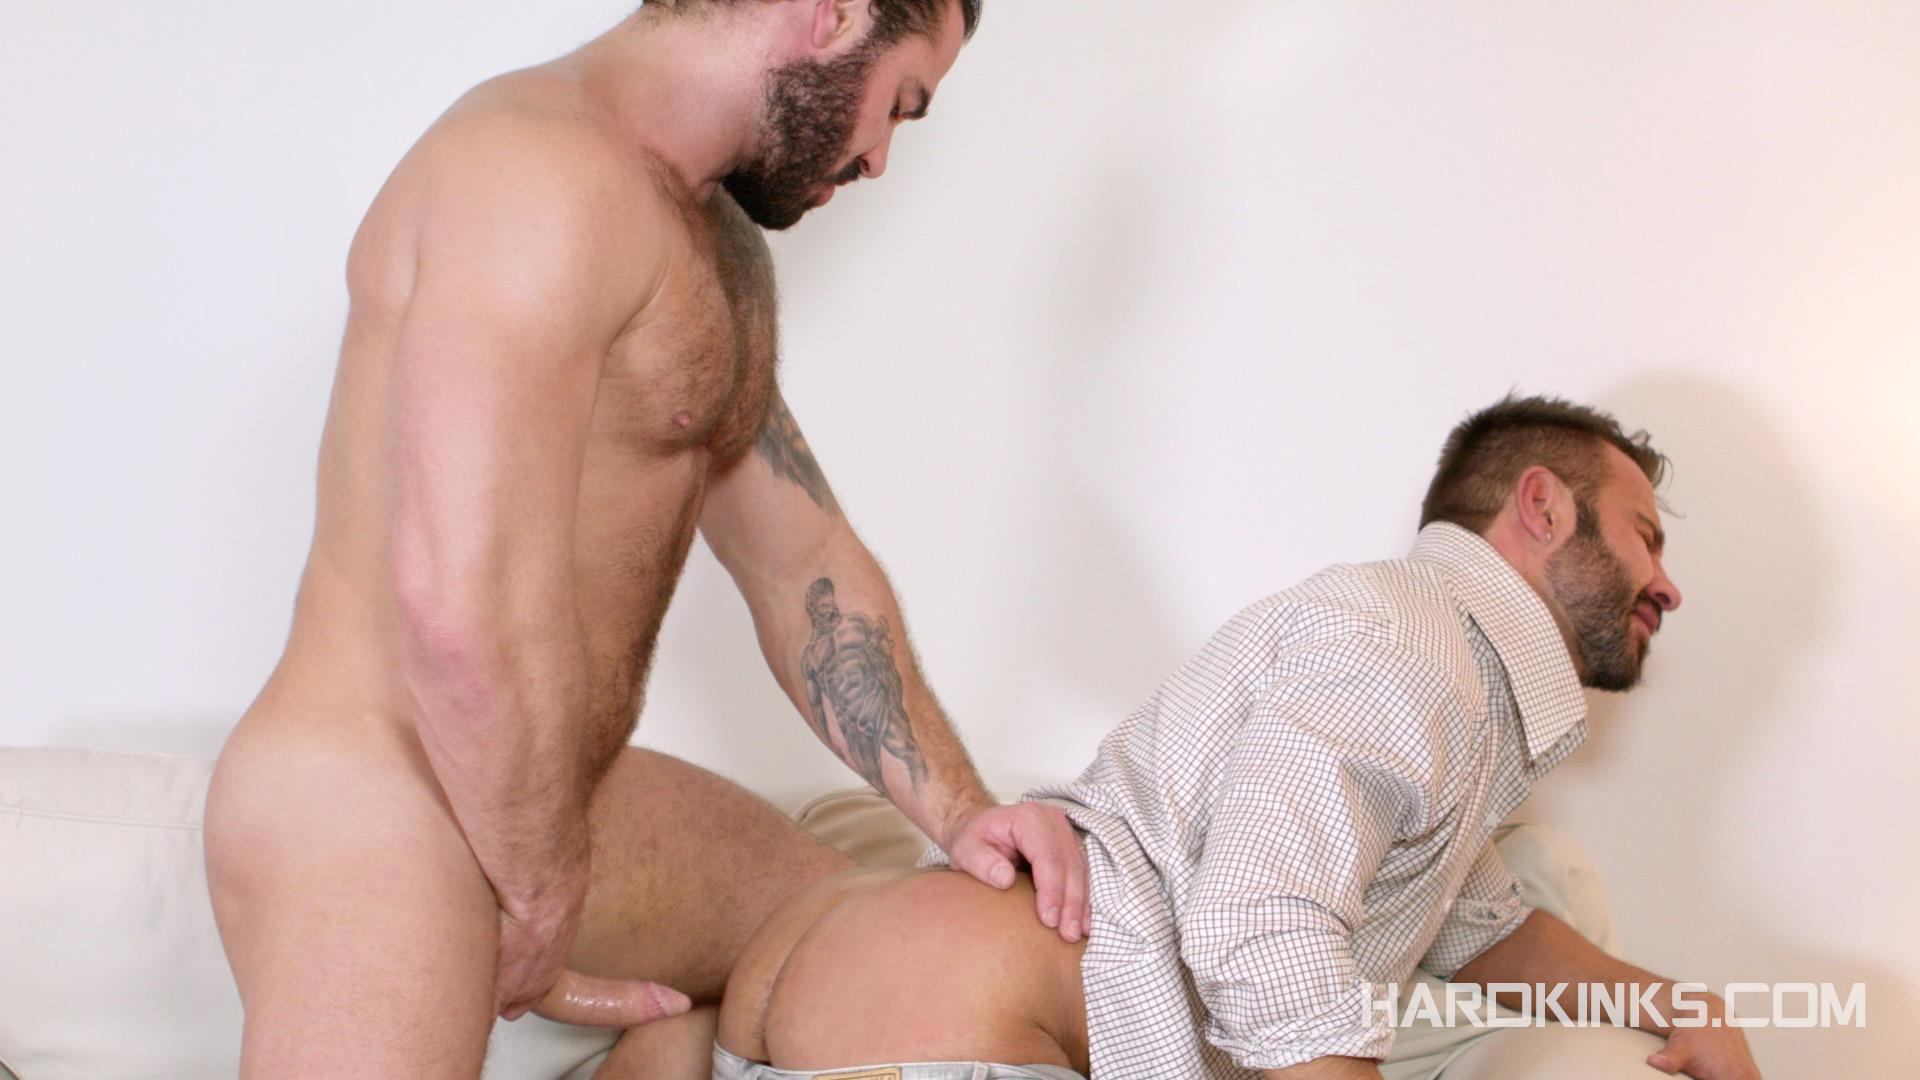 Hardkinks-Jessy-Ares-and-Martin-Mazza-Hairy-Alpha-Male-Amateur-Gay-Porn-11 Hairy Muscle Alpha Male Dominates His Coworker